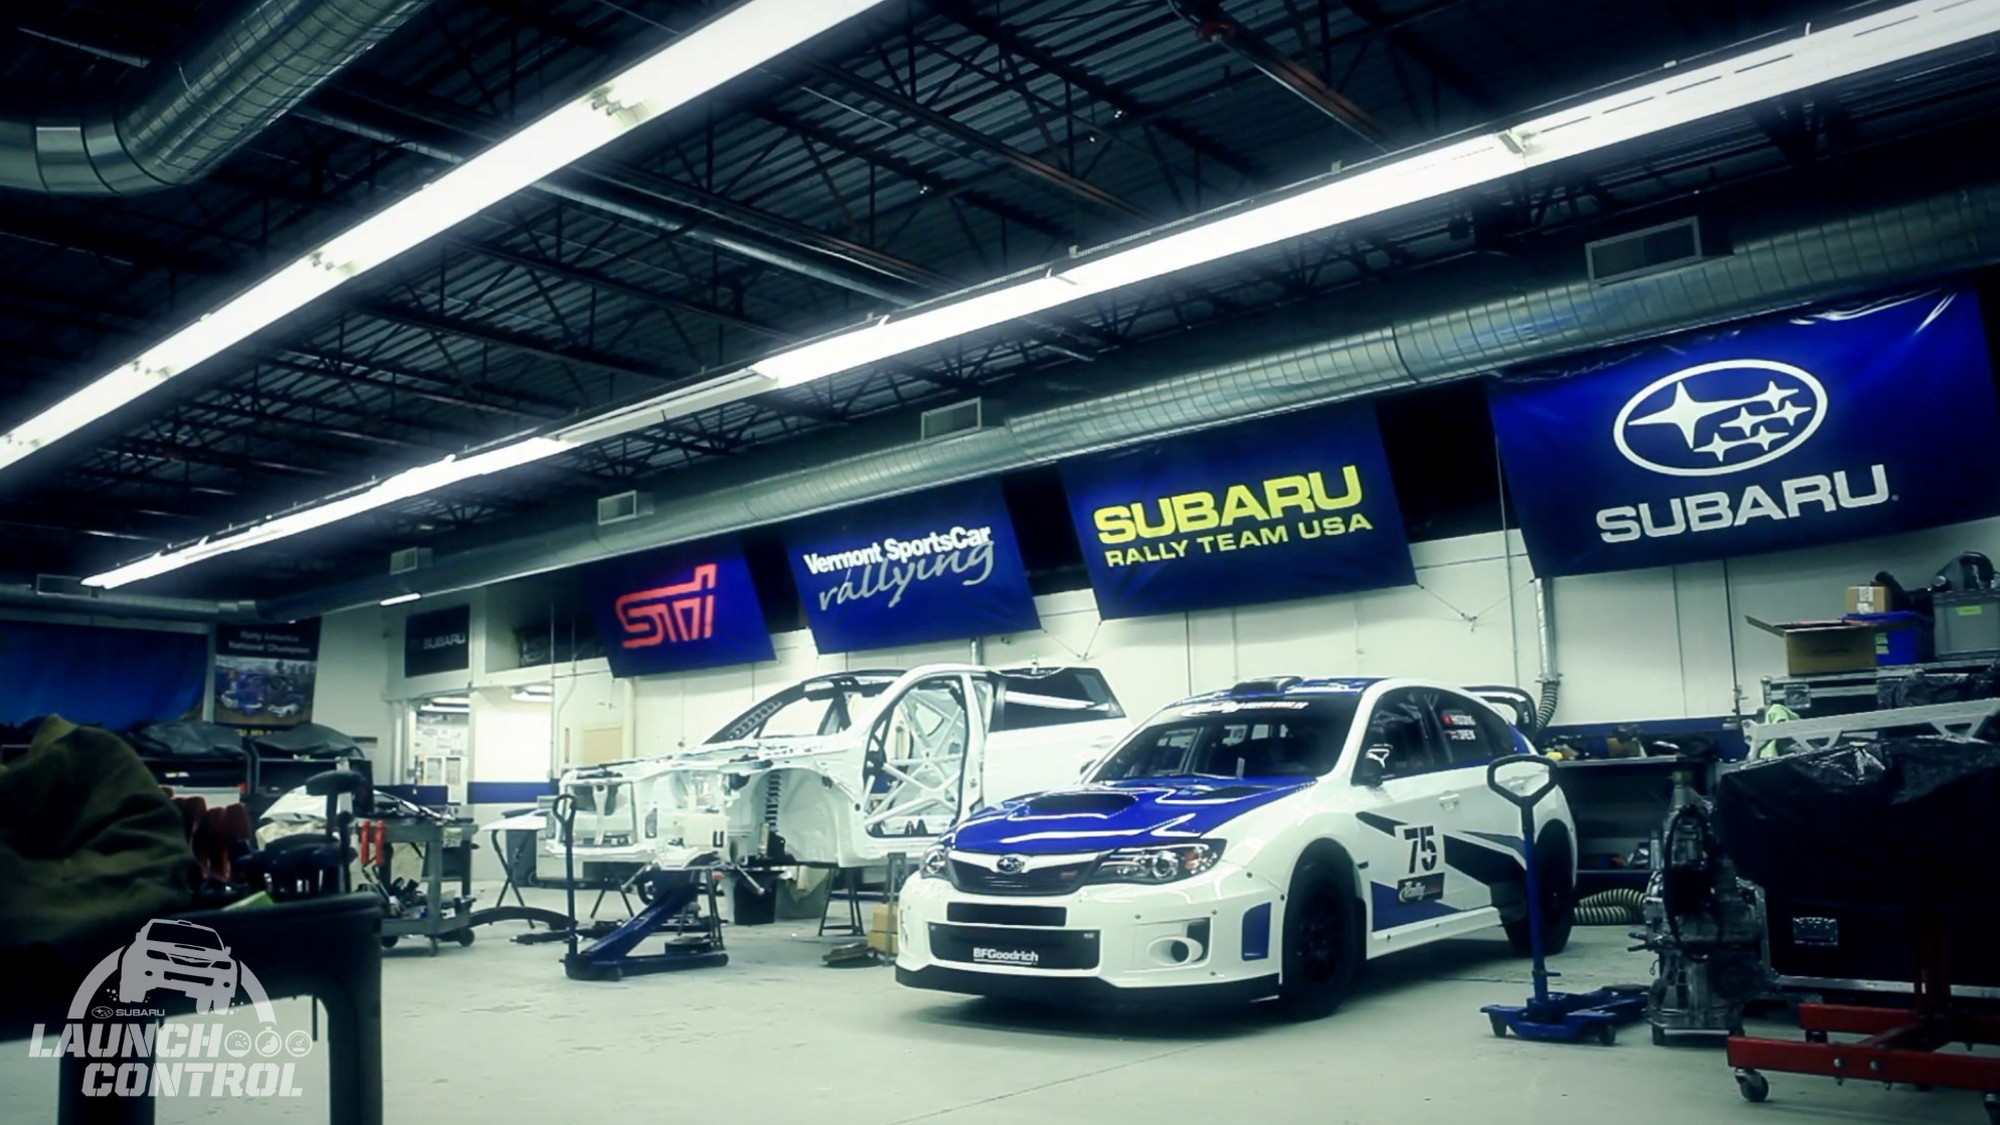 Subaru's new web series 'Launch Control'